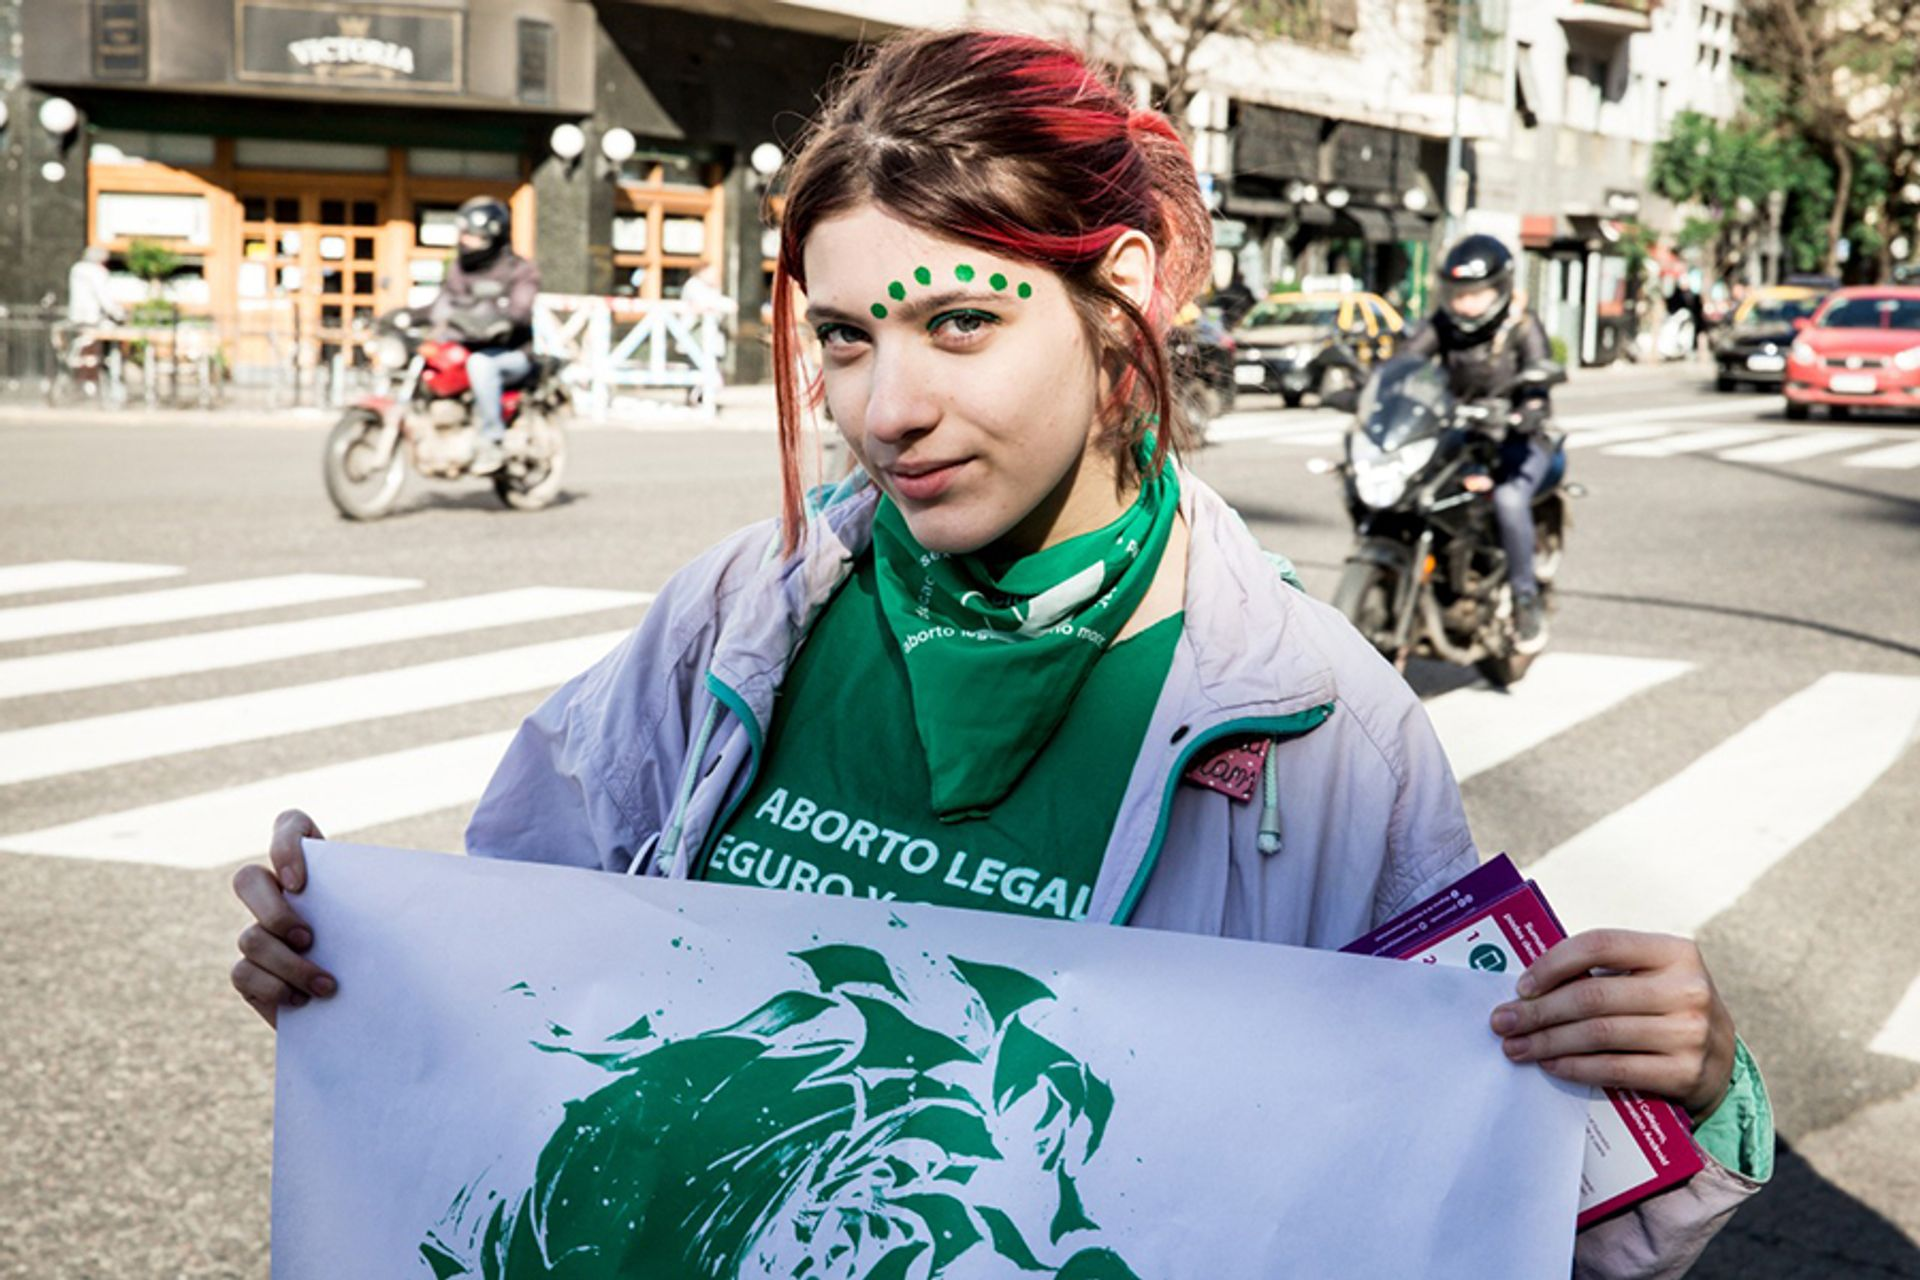 Members of Nosotras Proponemos designed posters to put up around Buenos Aires during the vote on the legalisation of abortion Courtesy of Nora Fisch